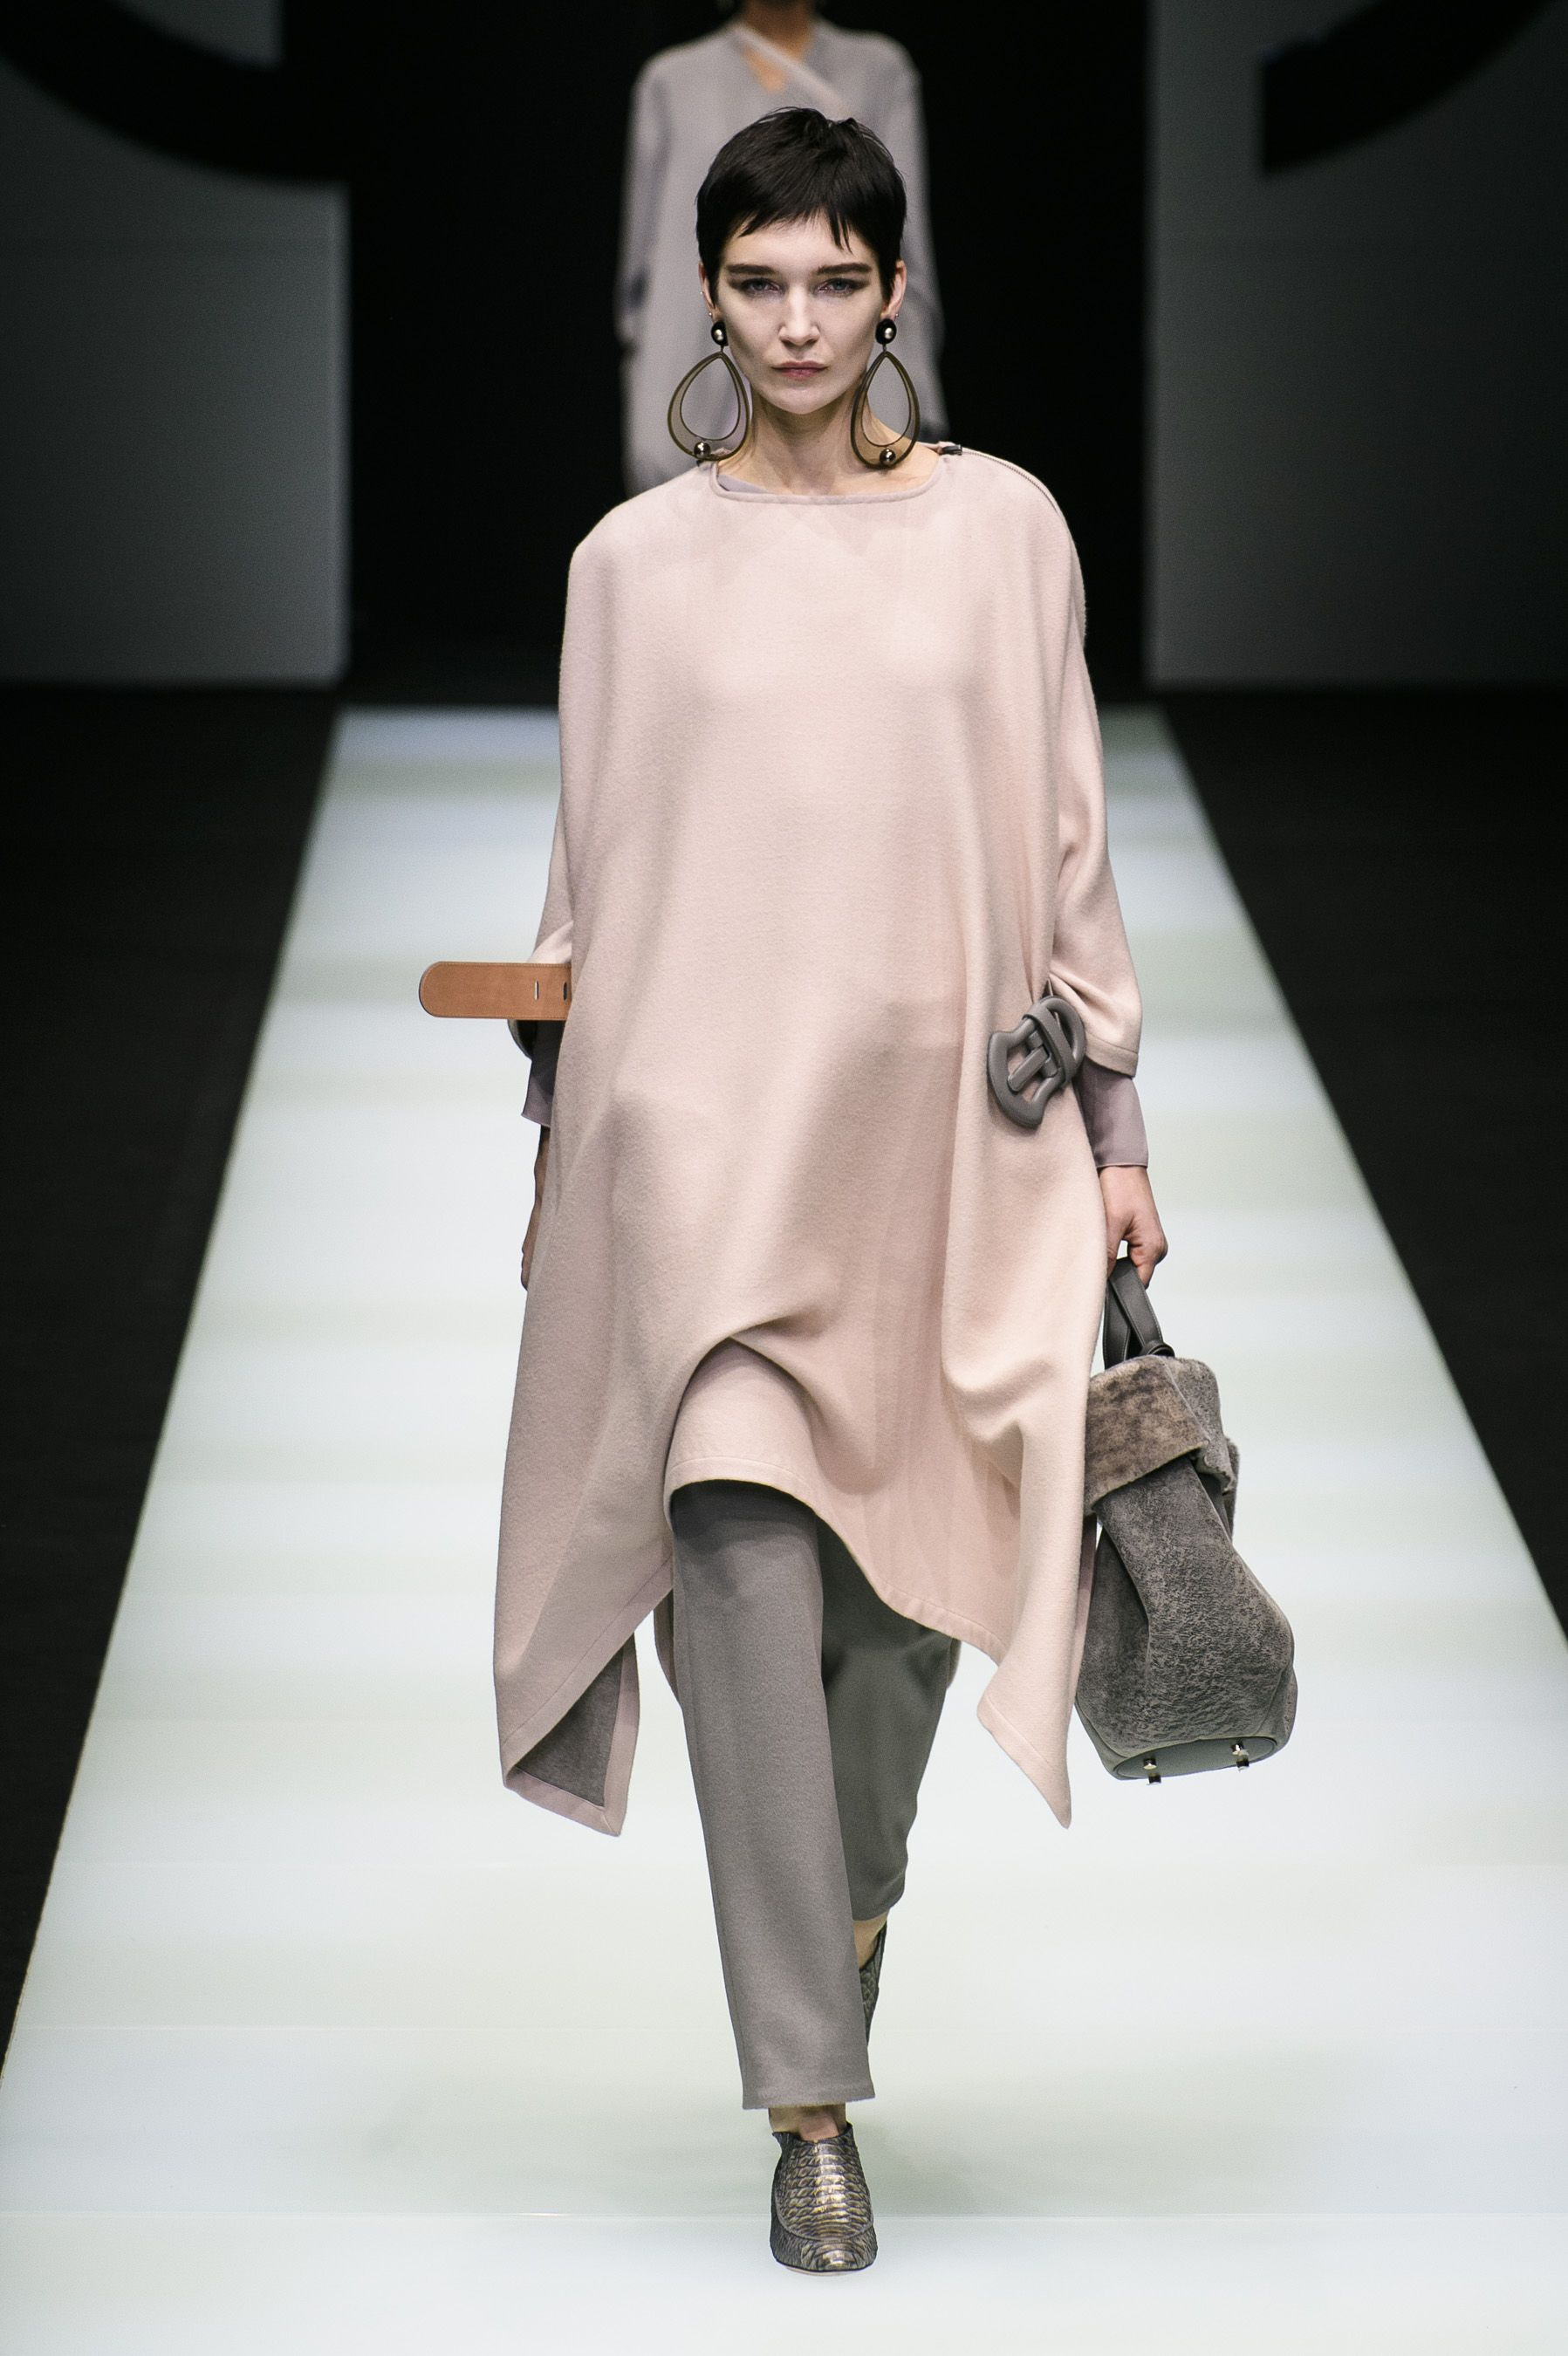 Giorgio Armani autumn/winter 2018